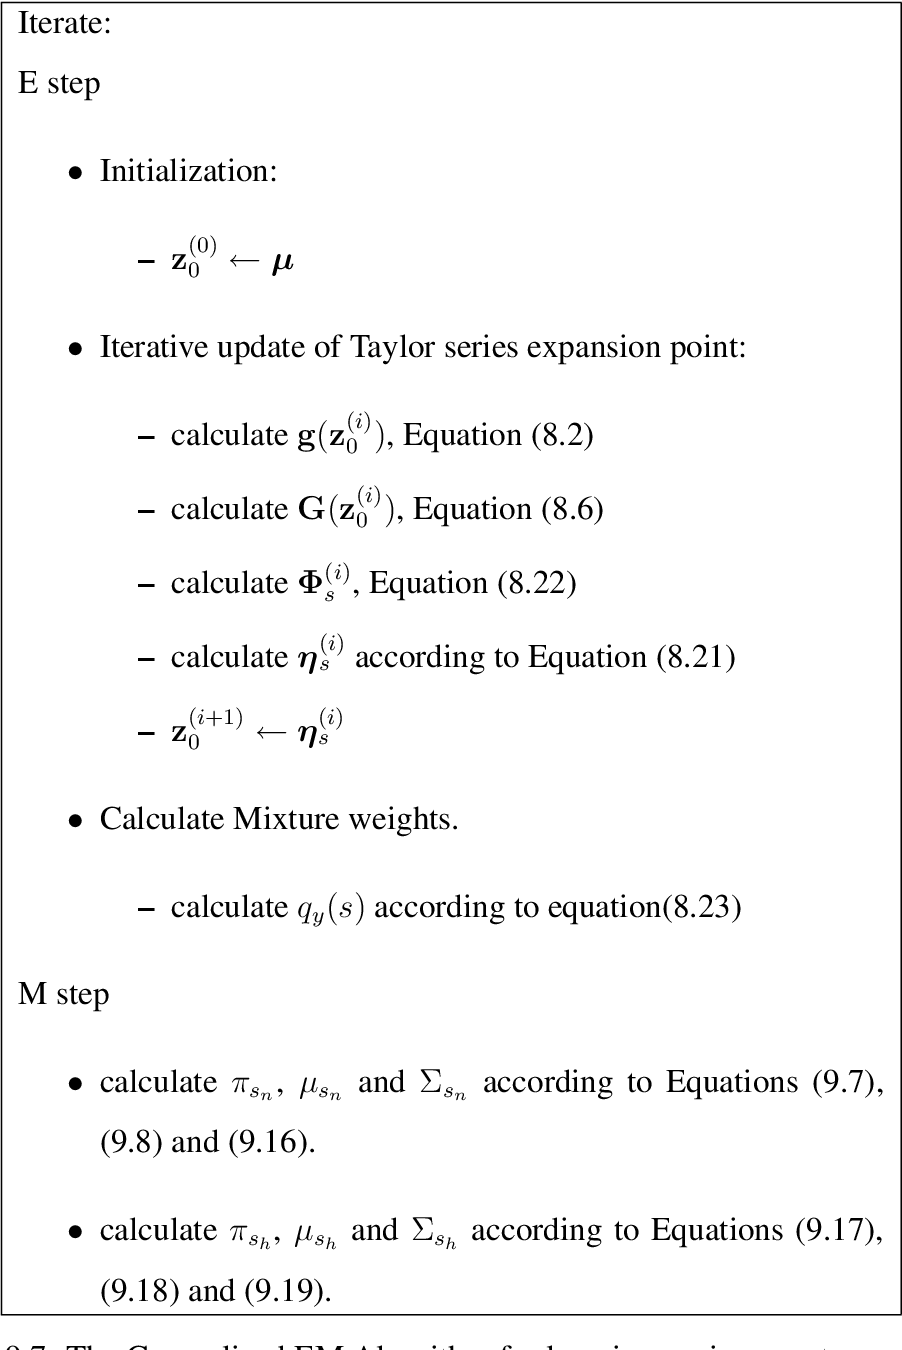 Figure 9.7: The Generalized EM Algorithm for learning environment parameters.